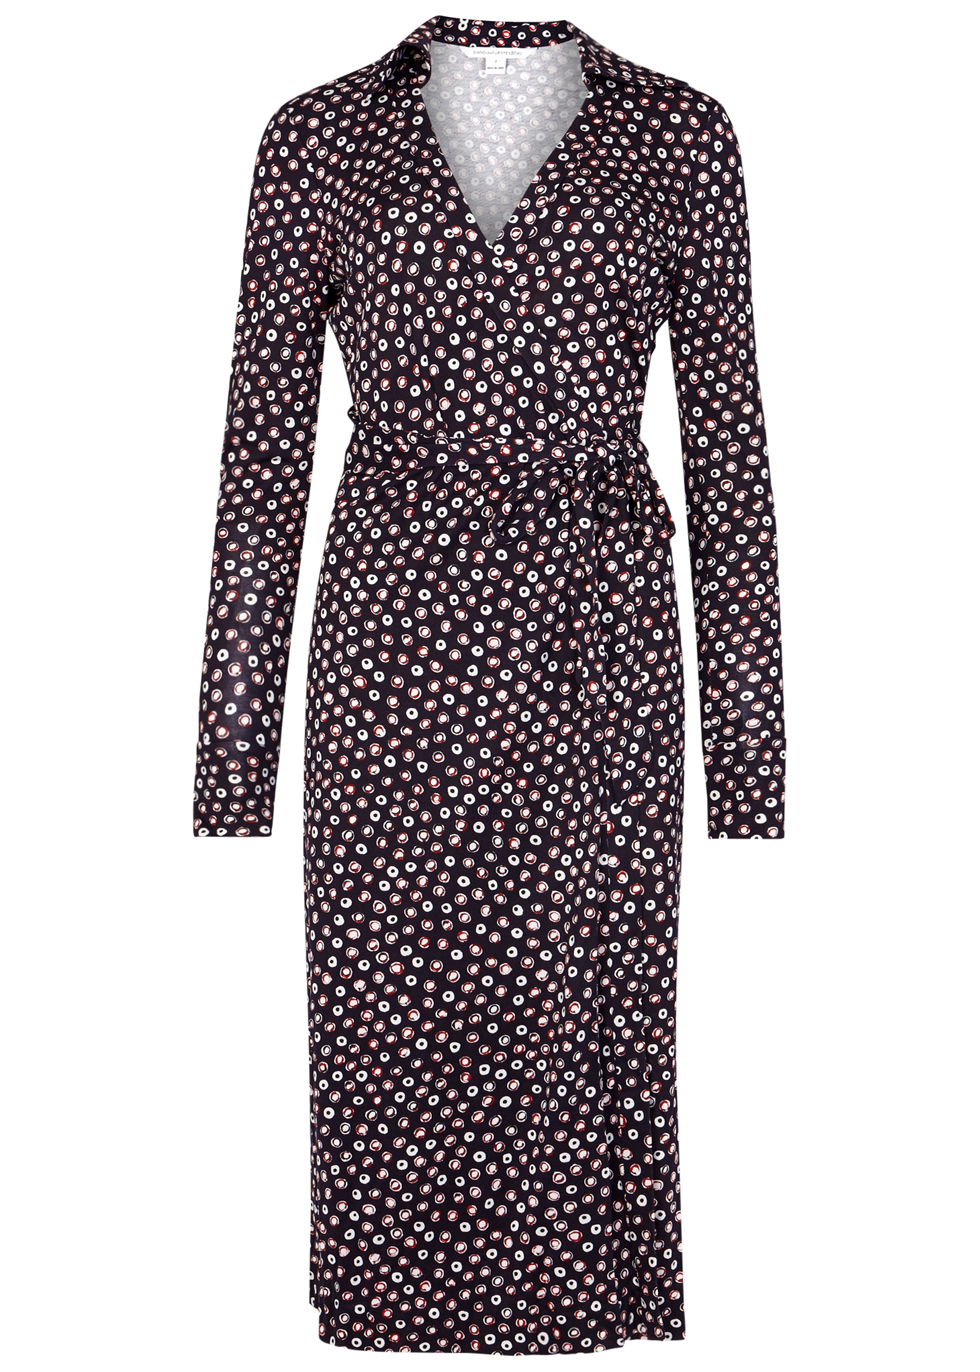 Cybil Printed Silk Jersey Wrap Dress - style: faux wrap/wrap; length: below the knee; neckline: v-neck; waist detail: belted waist/tie at waist/drawstring; secondary colour: ivory/cream; predominant colour: aubergine; fit: body skimming; fibres: silk - mix; sleeve length: long sleeve; sleeve style: standard; texture group: jersey - clingy; pattern type: fabric; pattern: patterned/print; occasions: creative work; season: a/w 2016; wardrobe: highlight